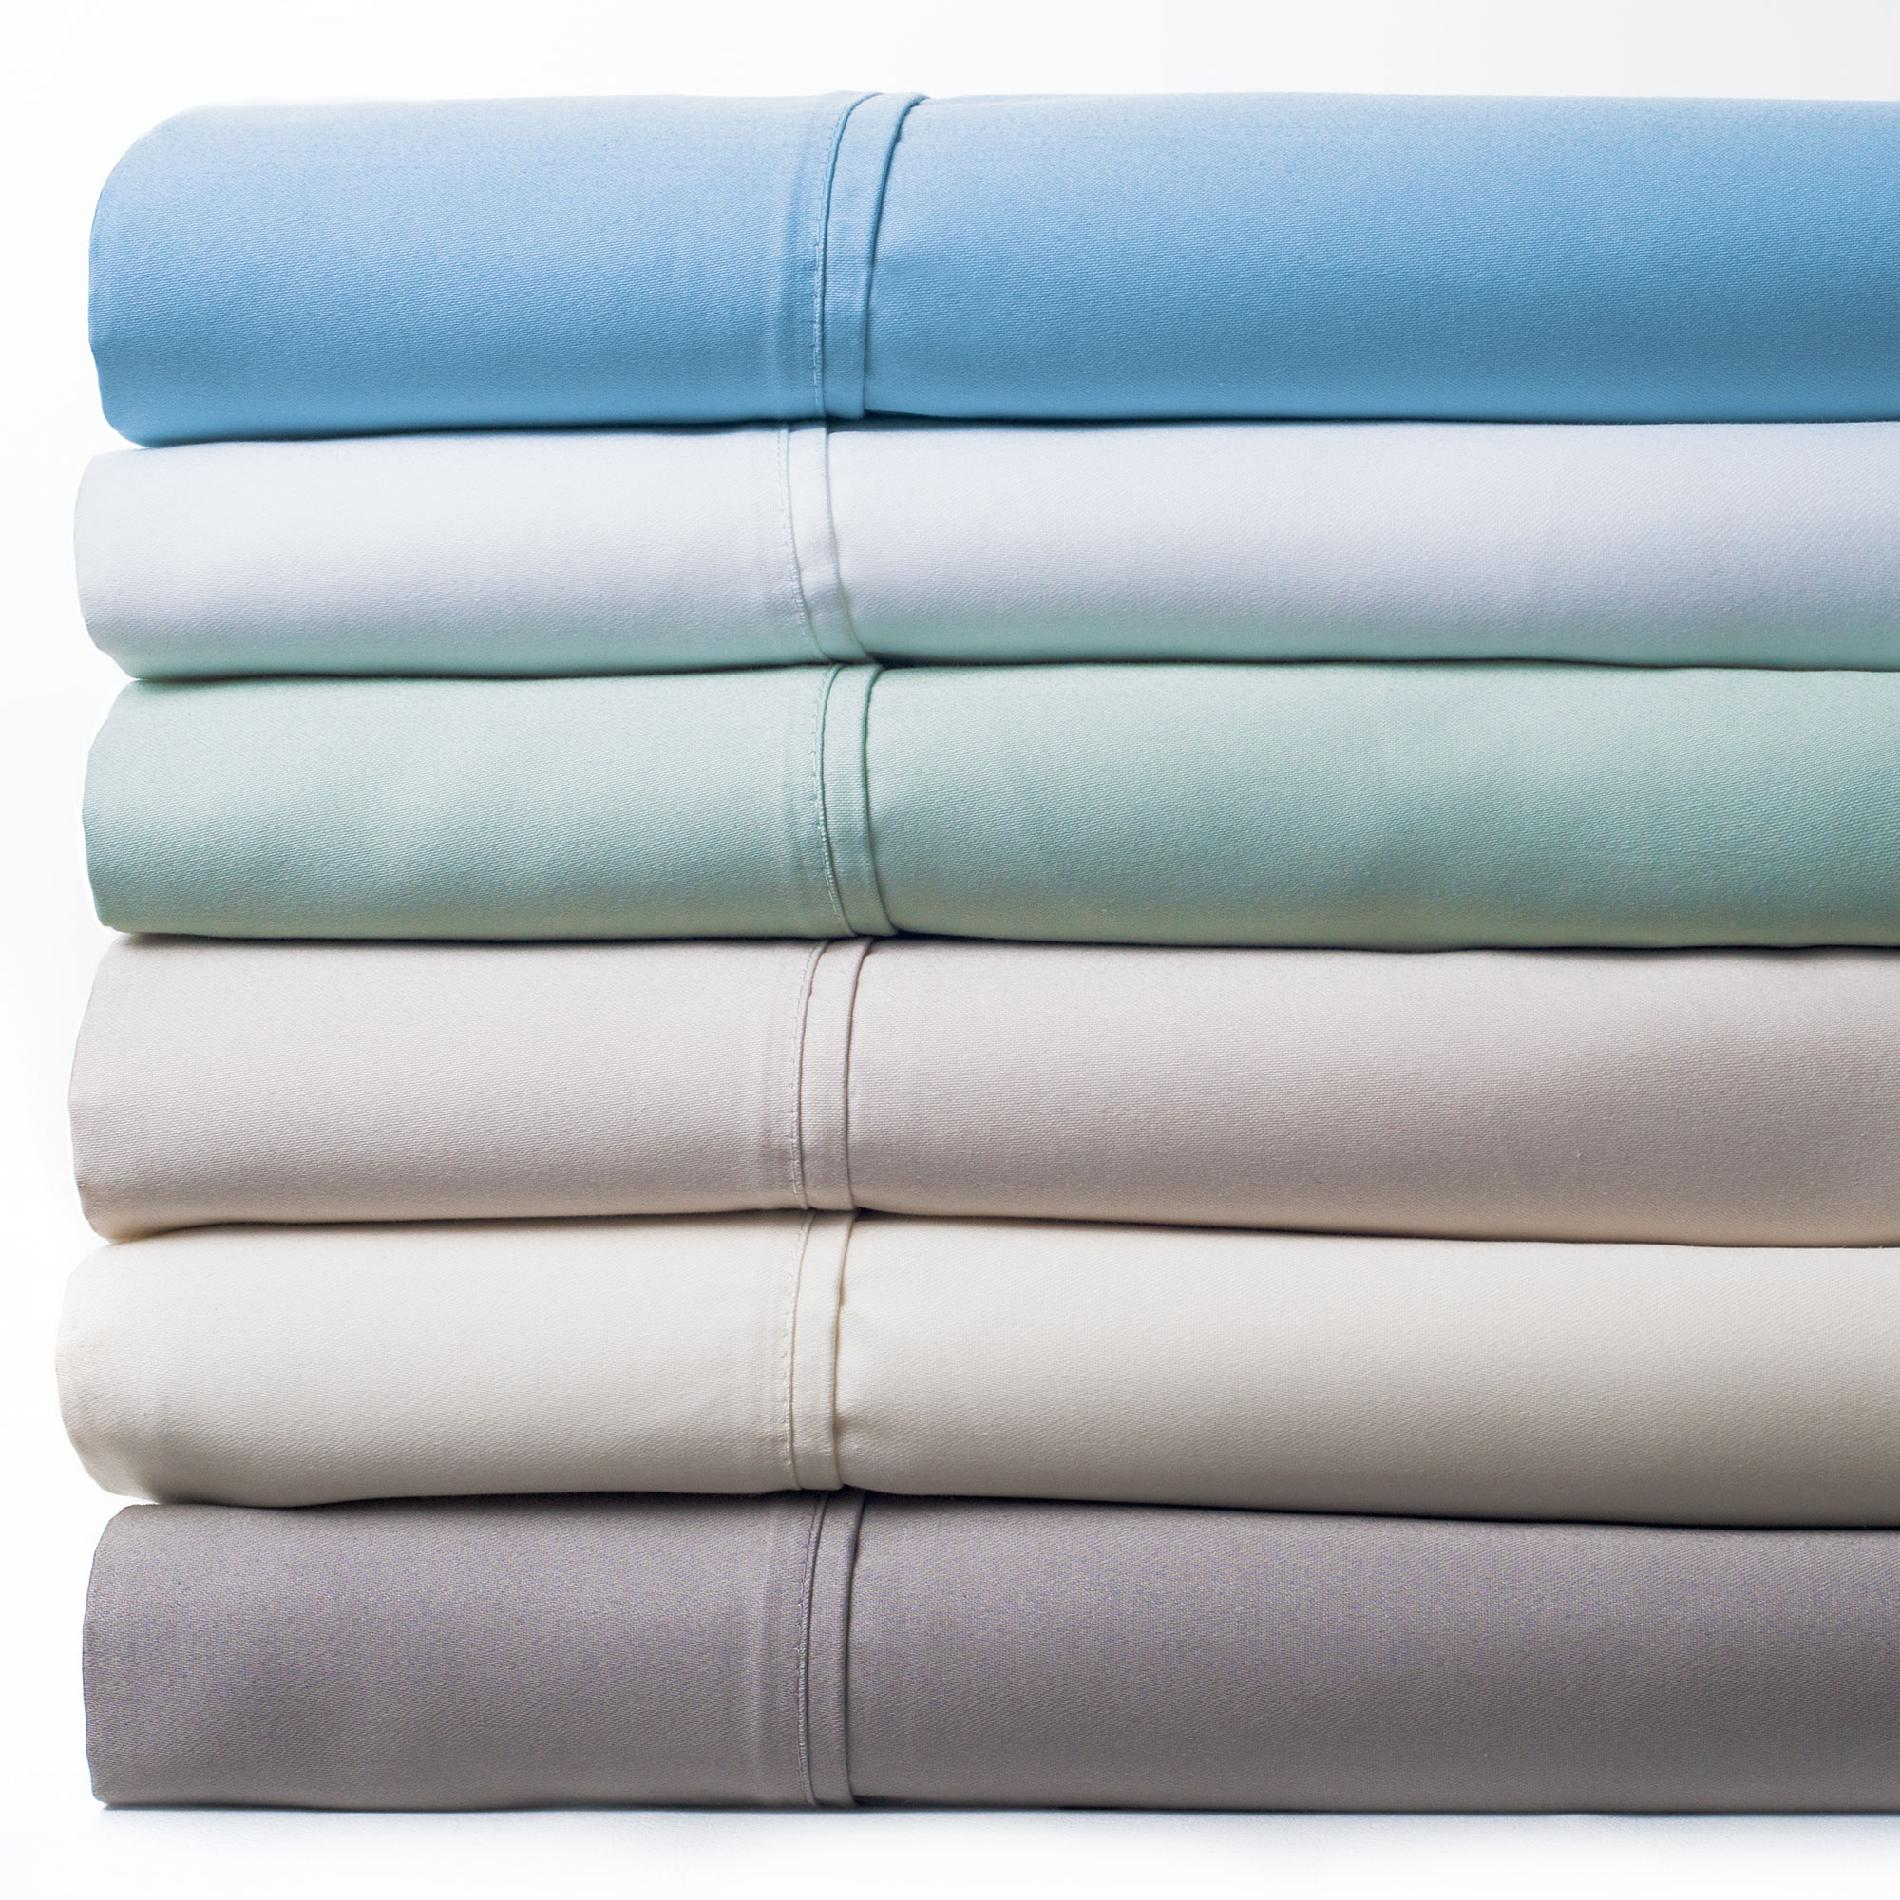 1000 Thread Count Sheets King Lavish Home 1000 Tc Cotton Rich Sateen Sheet Set